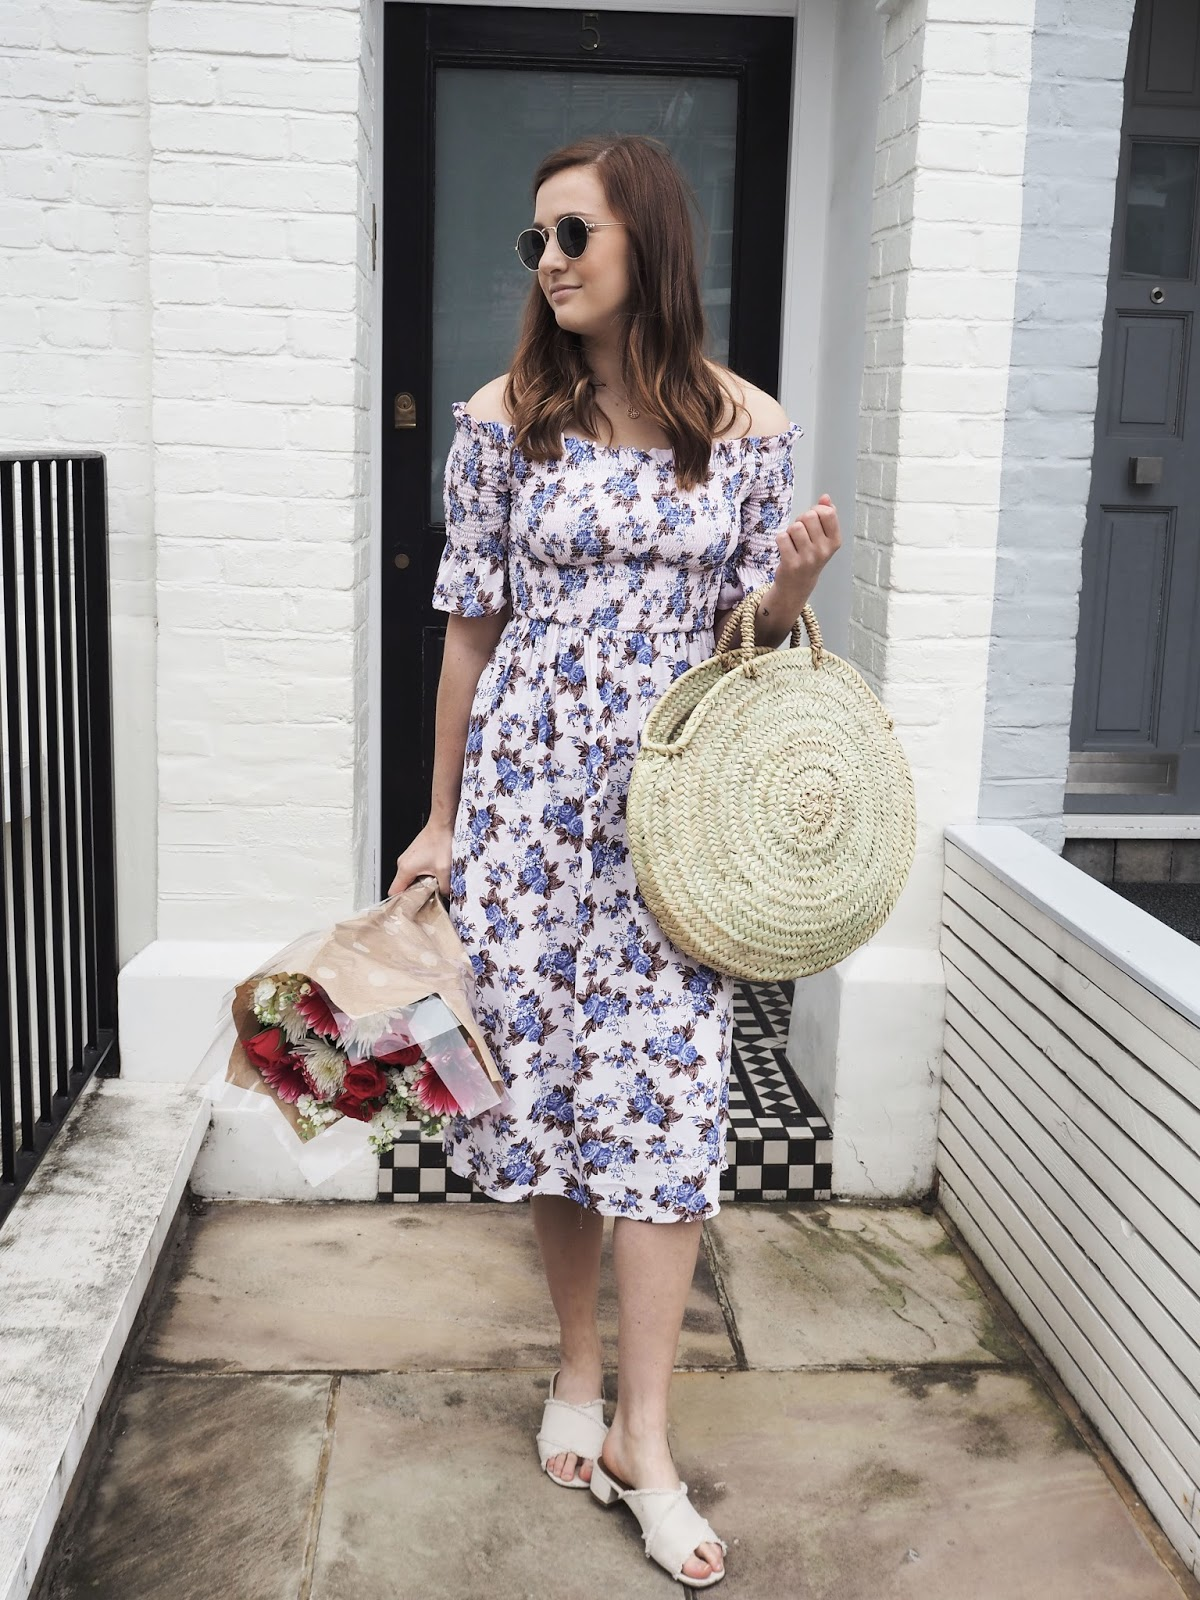 The Floral Midi Dress ft. Topshop, H&M, Bohemia Design - Lauren Rose Style - Fashion and Personal Style Blogger London // OOTD / Summer Style / Street Style Outfit